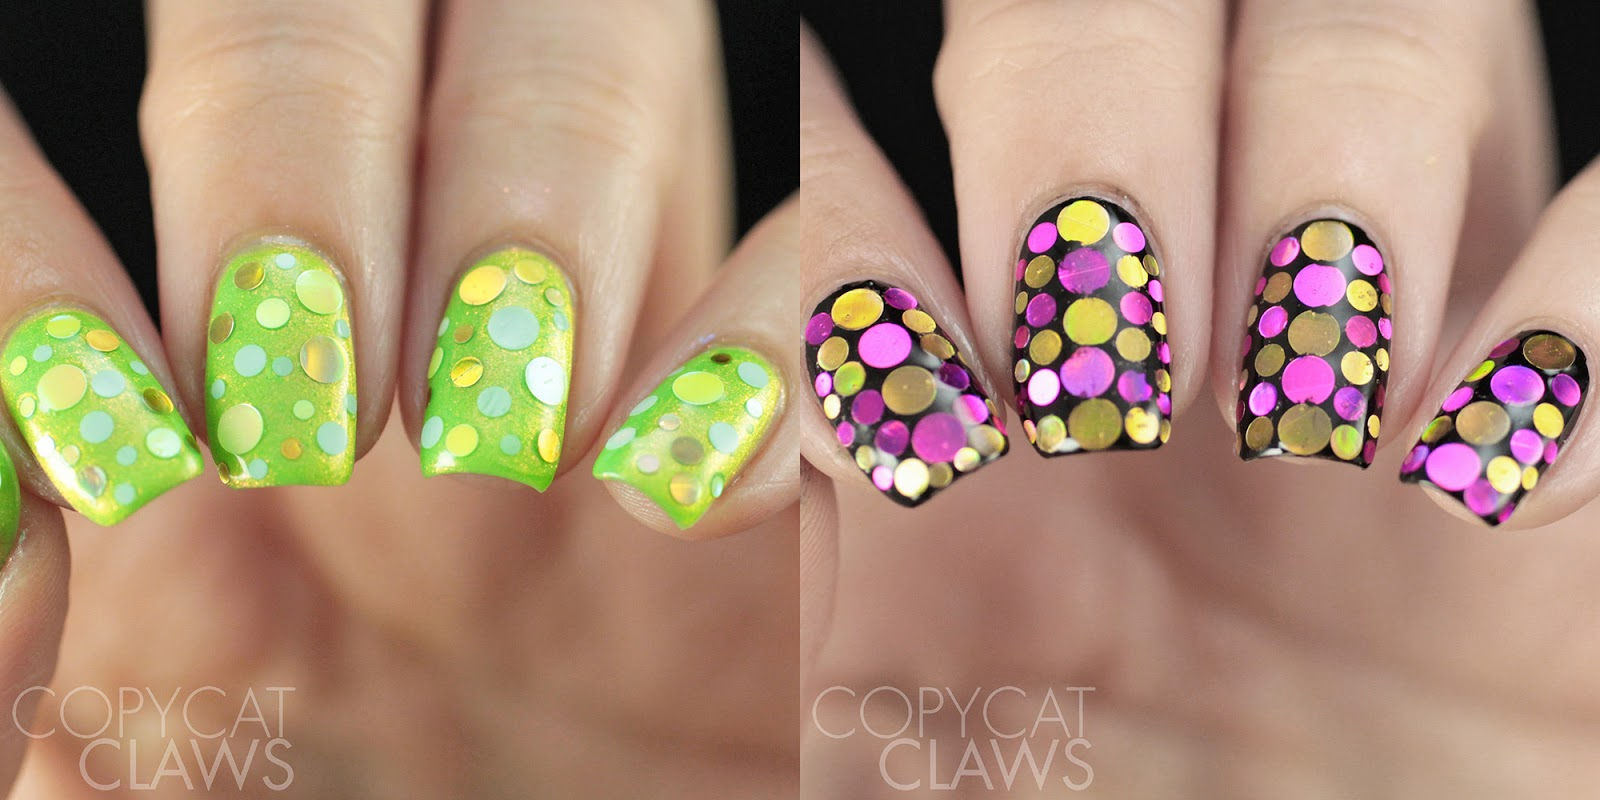 Copycat Claws: Whats Up Nails Margarita and Flower Confetti